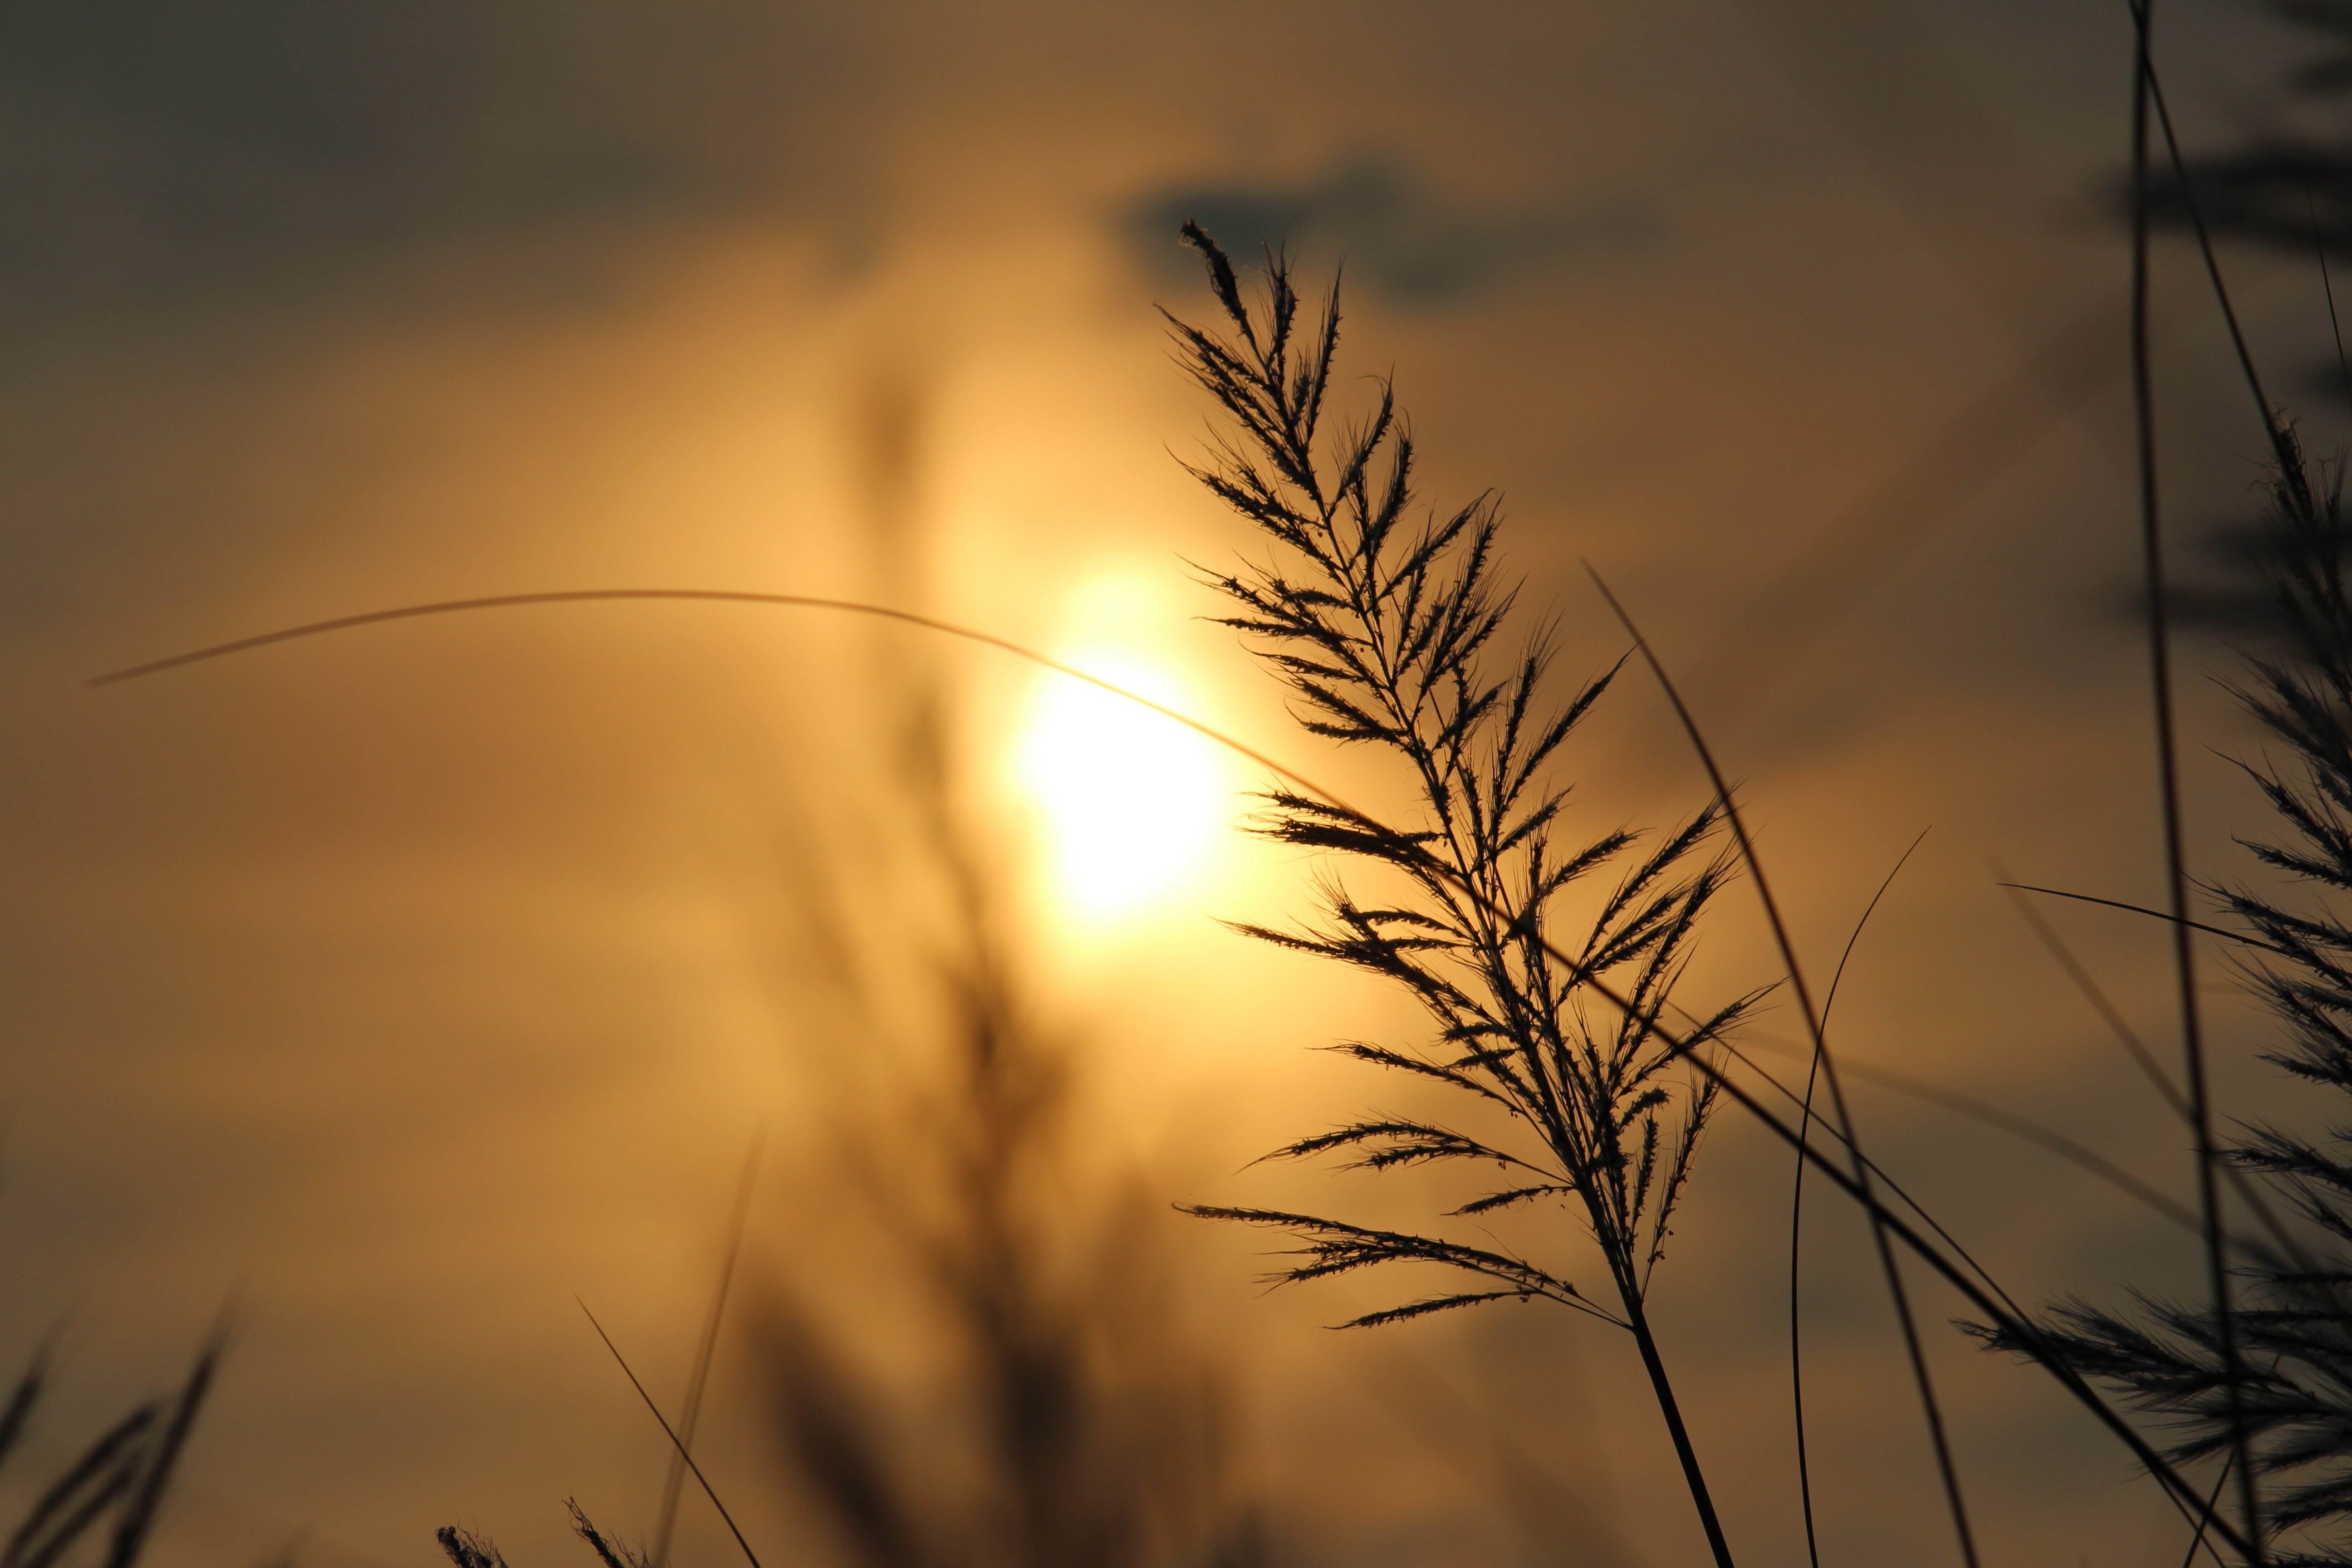 Silhouette of Plant, Afterglow, Light, Sun, Sky, HQ Photo